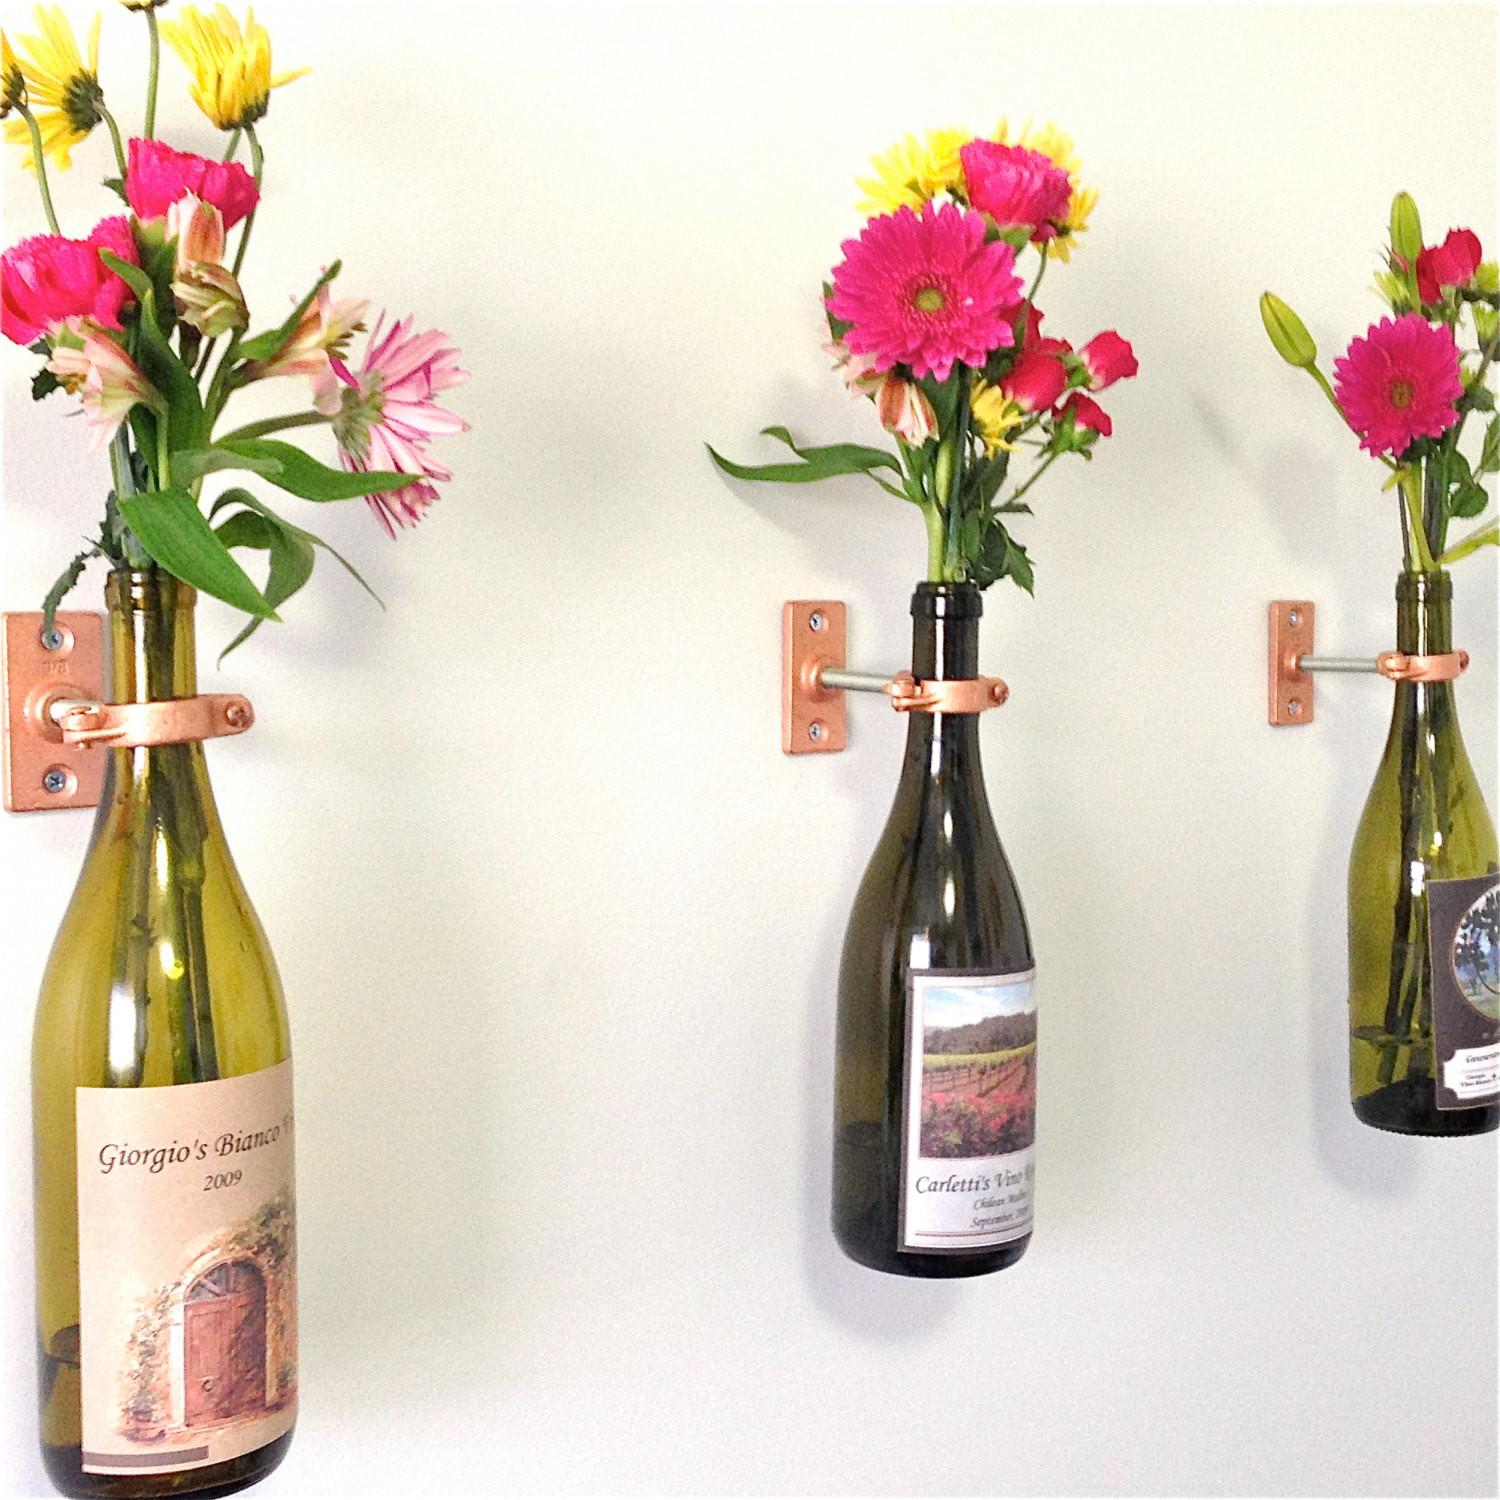 Hardware Only Wine Bottle Wall Flower Vase Kits Diy